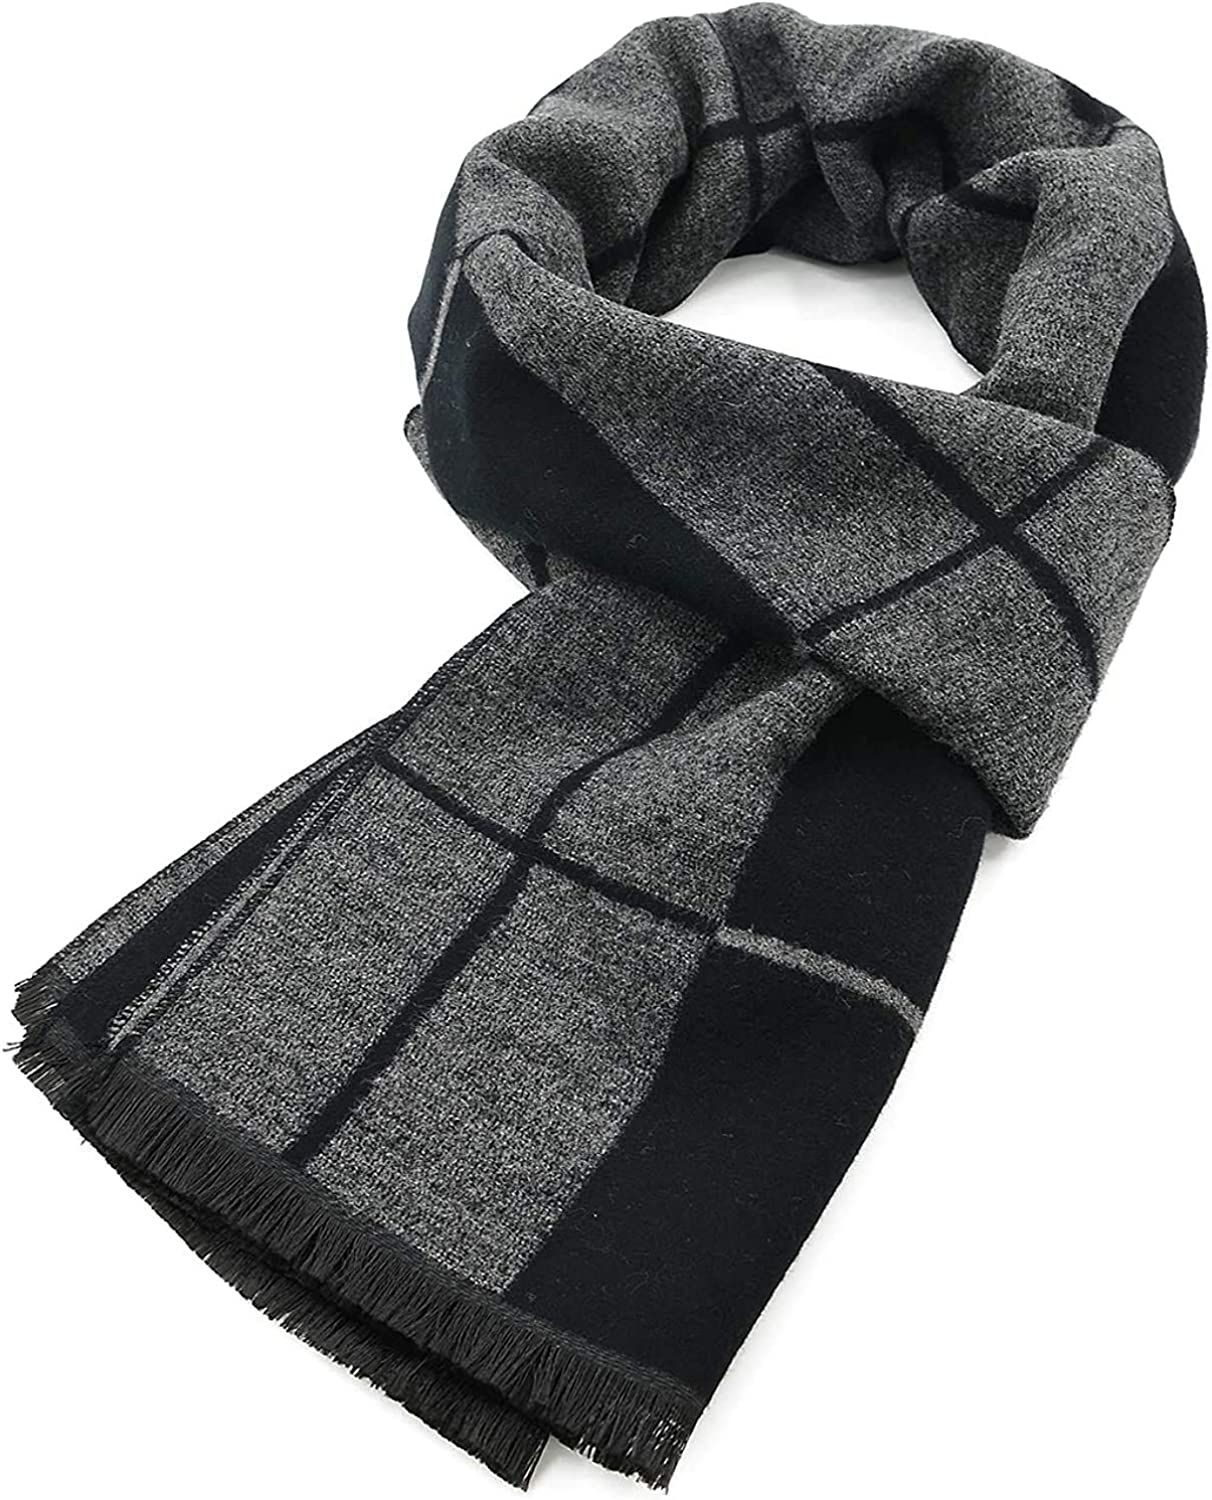 Fashion Scarves Blanket Men'S and Women'S Top Necks MKLP Tassel Scarf Winter Ladies Scarf Large Warm Shawl Plaid Scarf Large Shawl Keep Warm and Prevent Cold For Women